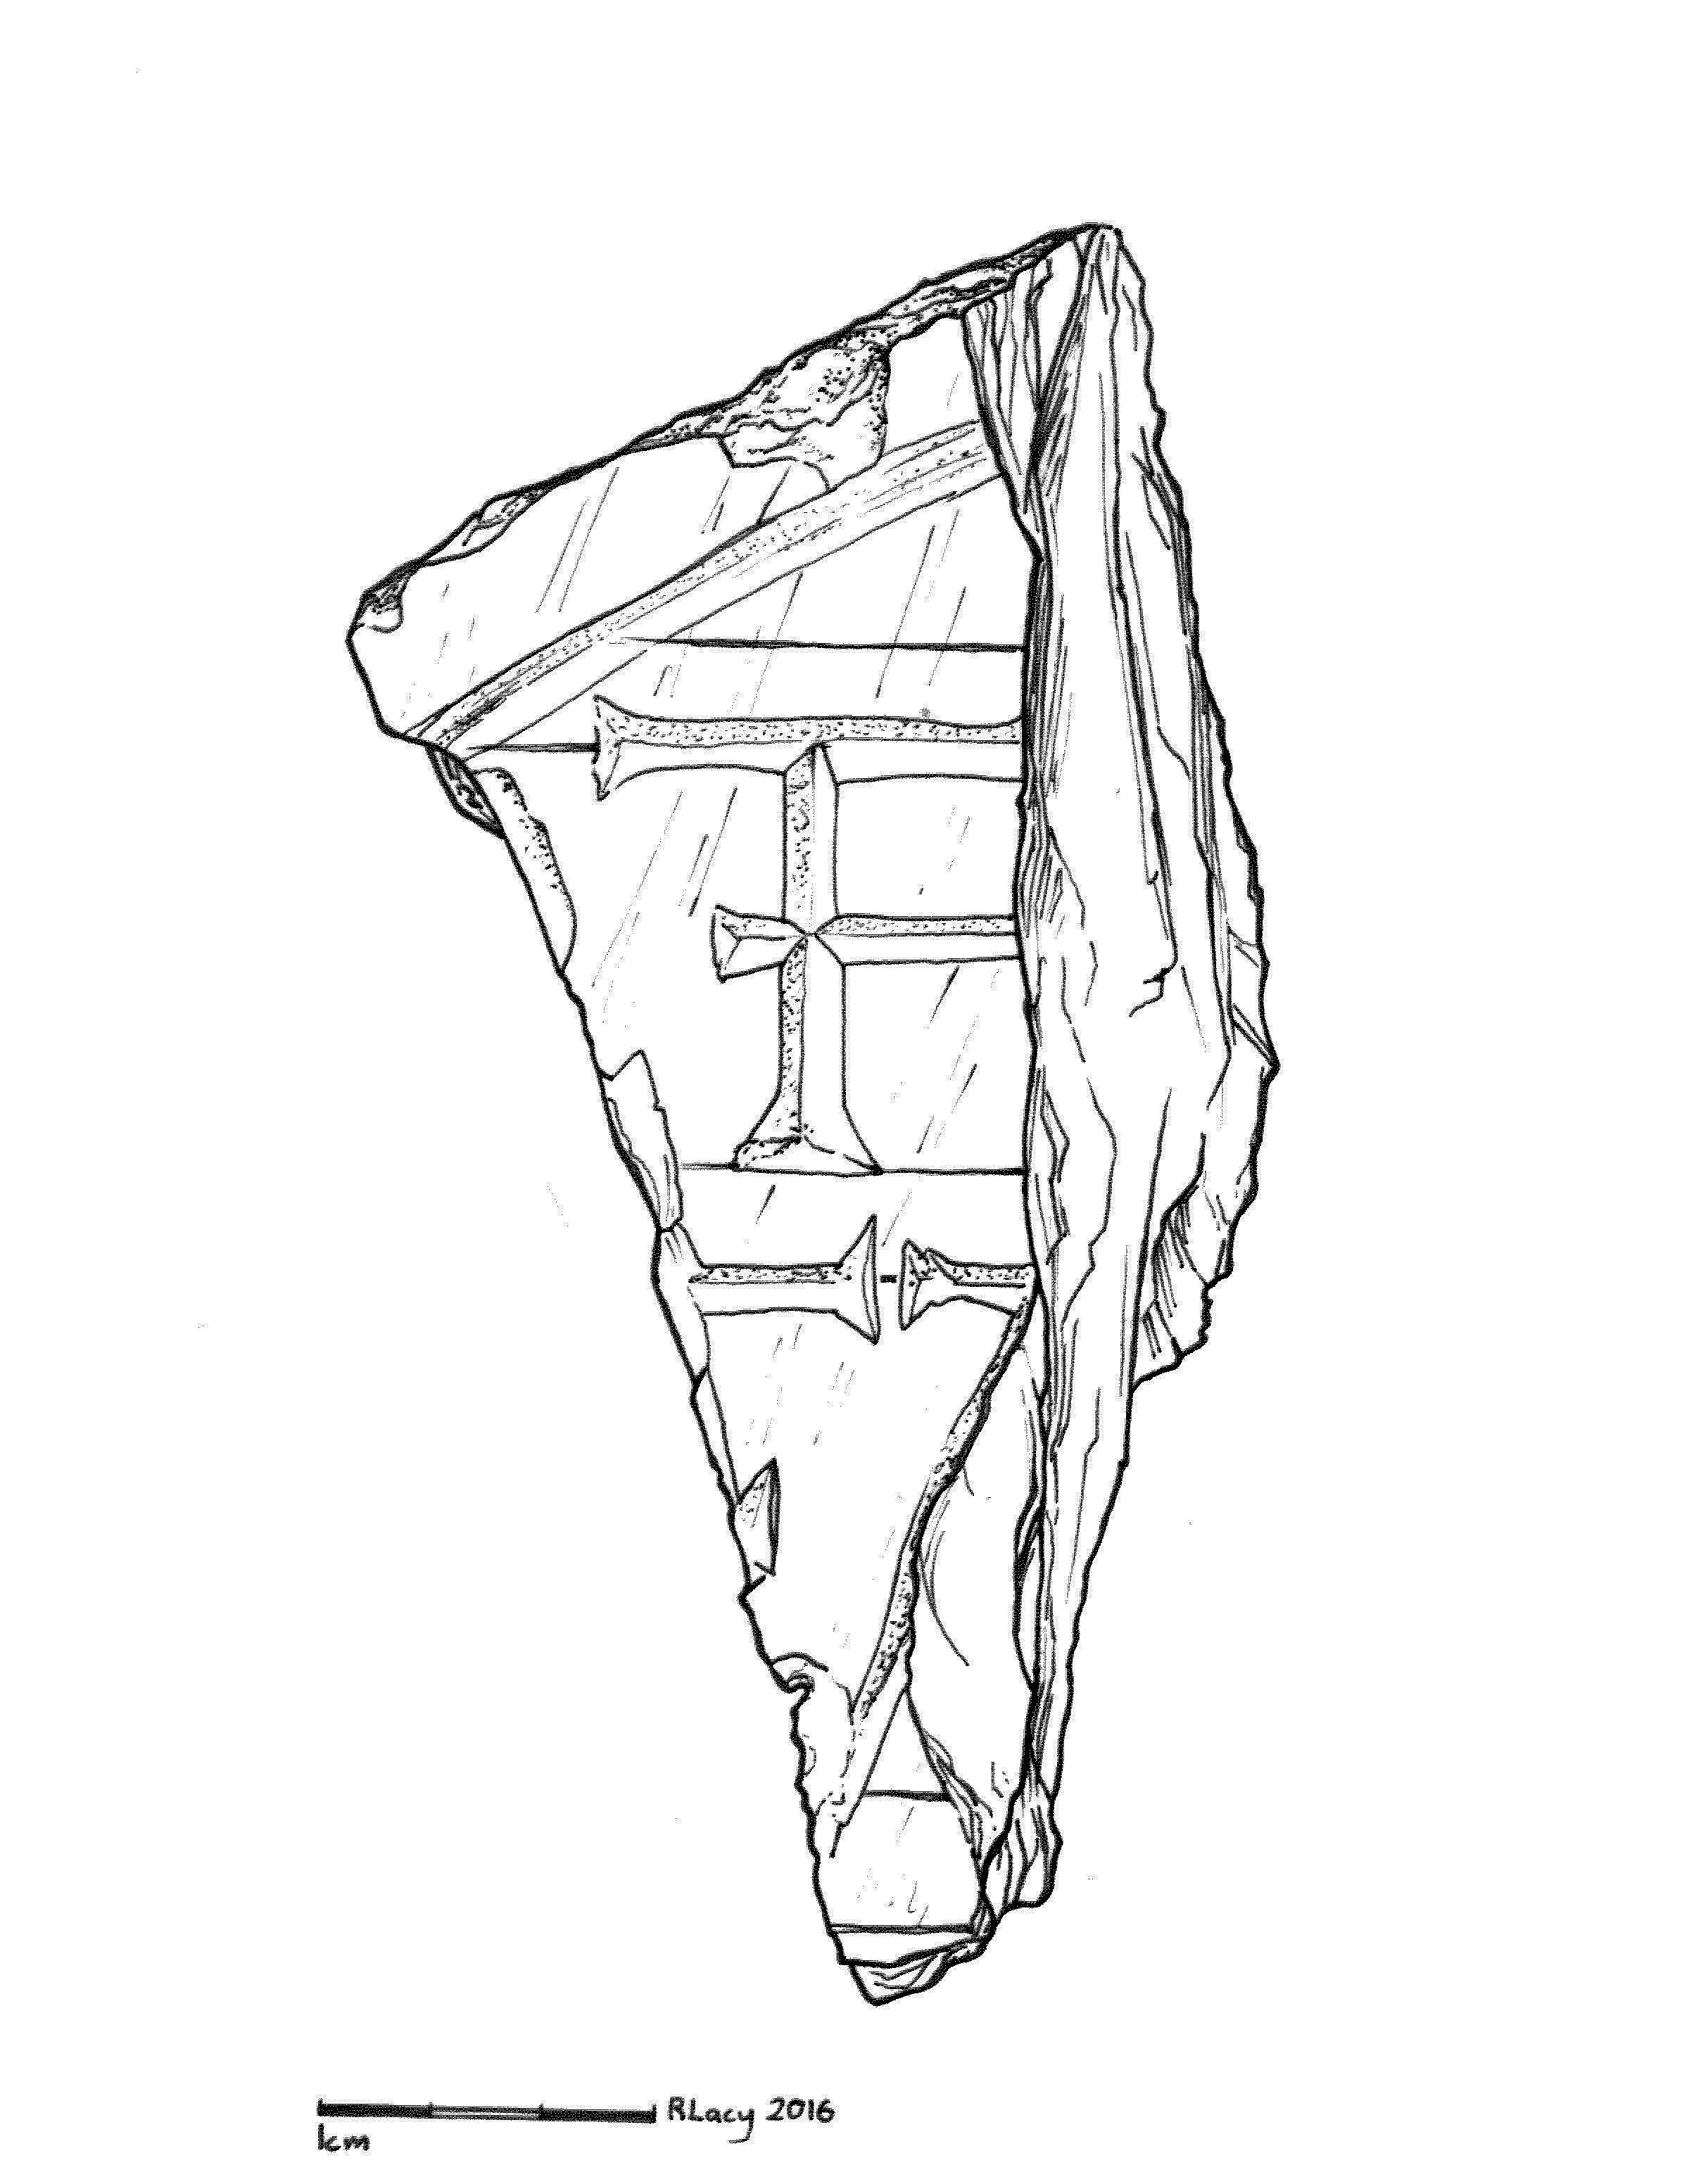 Illustration of one of the gravestone fragments previously uncovered.